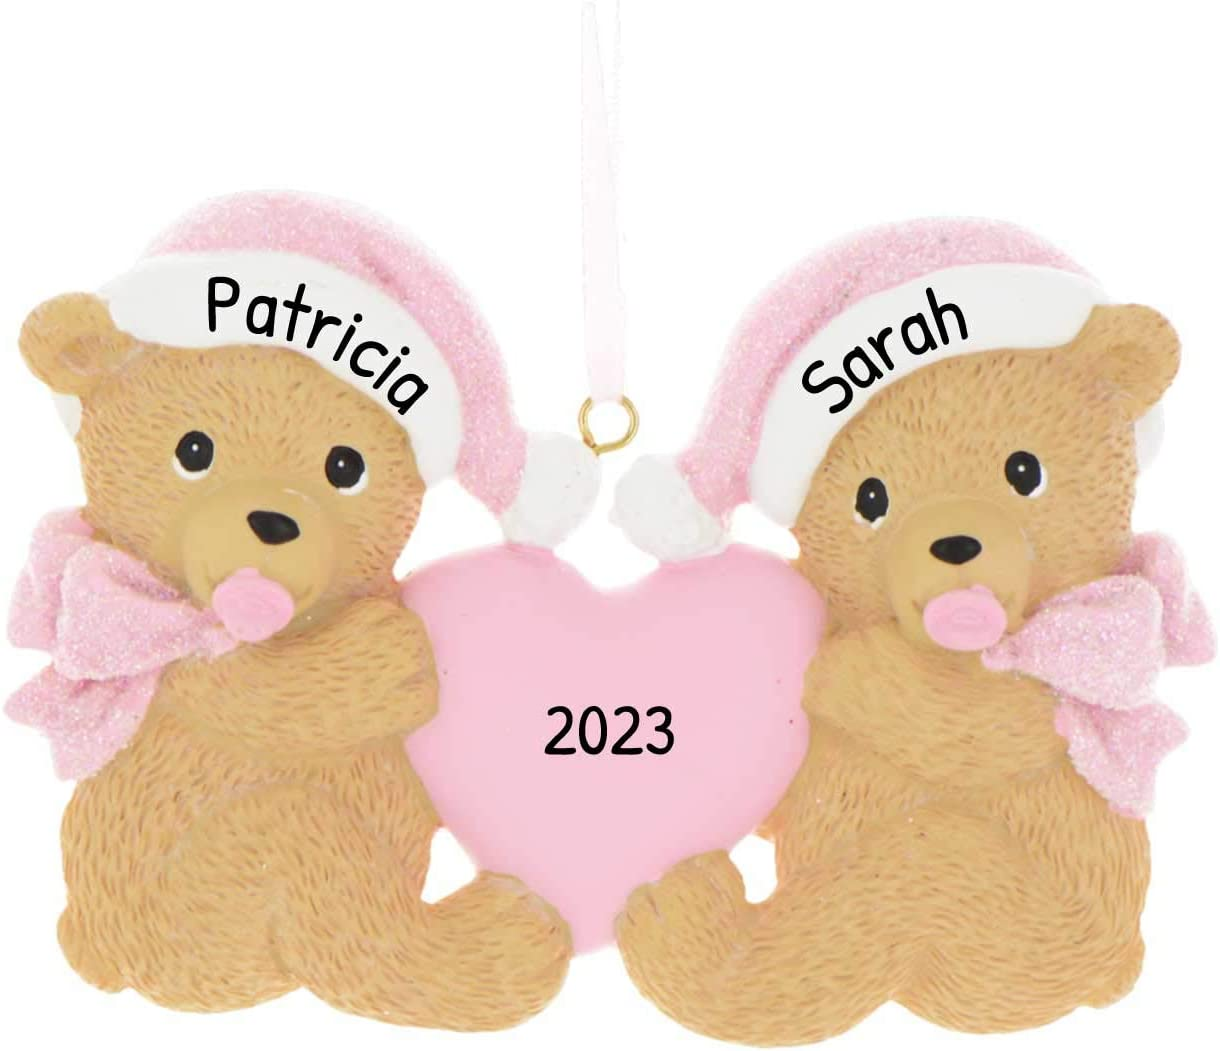 Personalized Twins Bears Baby's First Christmas Tree Ornament 2020 - Same Born Teddy Pacifier Glitter Hat Ribbon Hold Heart 1st Girl Miracle New Mom Grandkid - Free Customization (Pink)